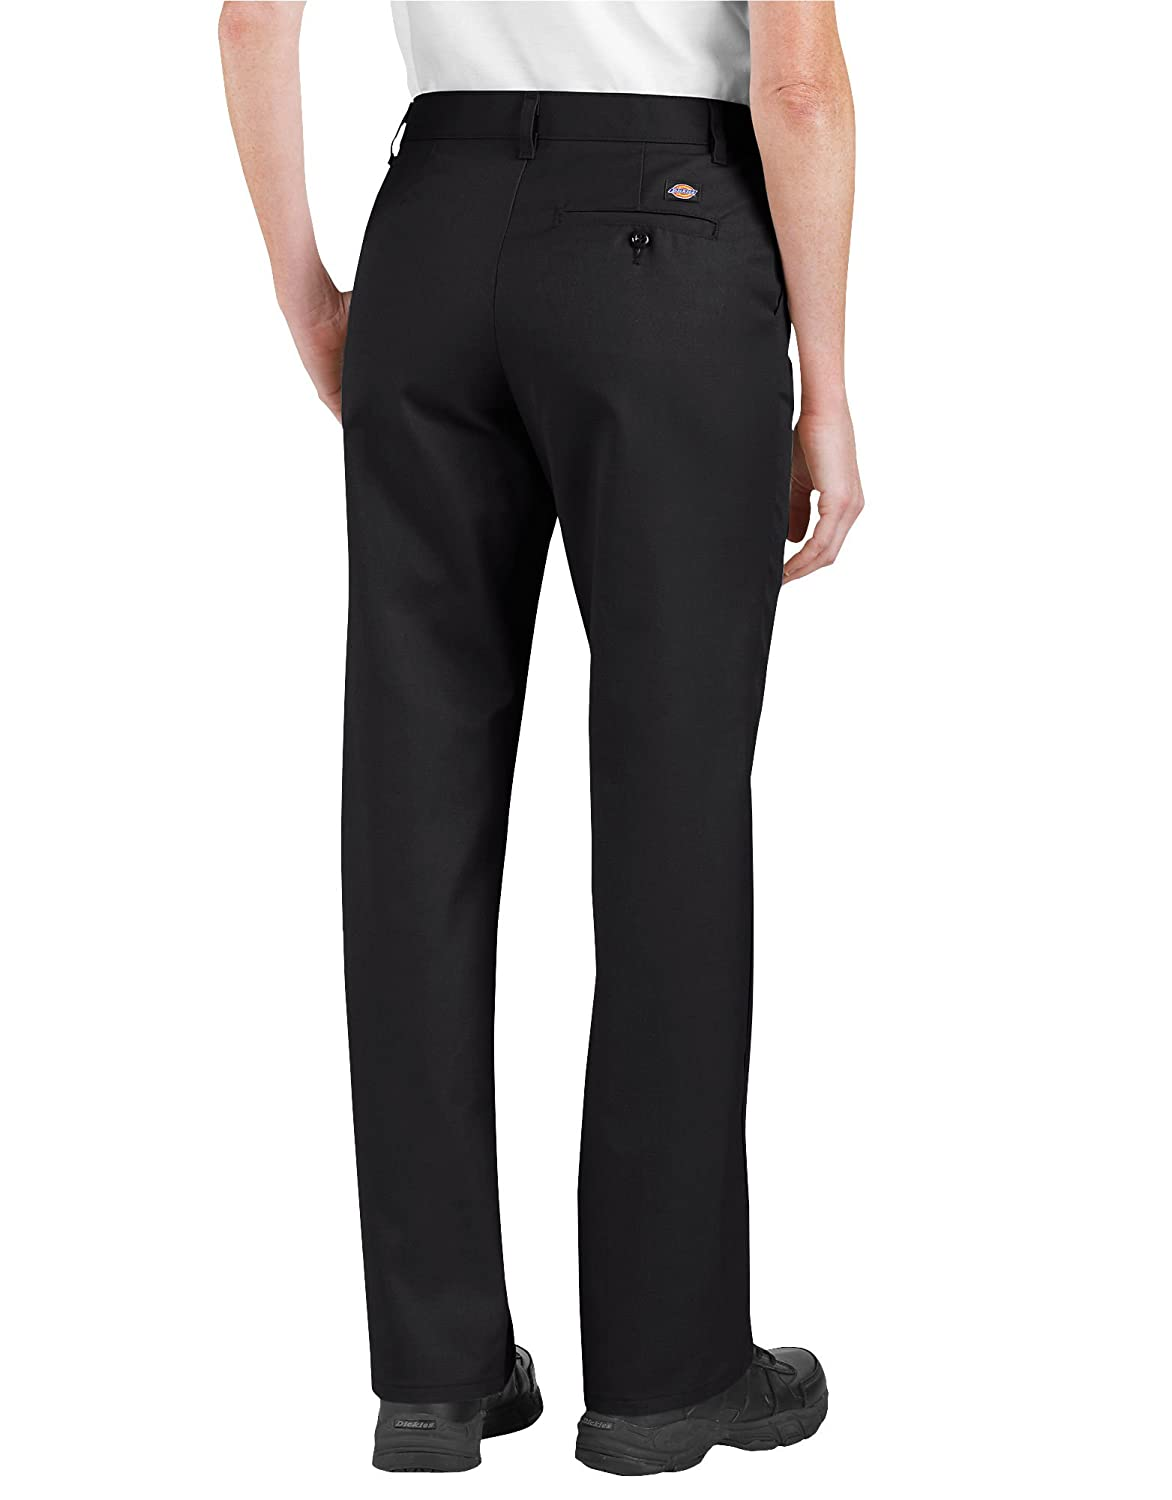 Dickies Occupational Workwear FP322DS4RG FP322 Womens Relaxed Fit Flat Front Pant Desert Sand 4RG Fabric